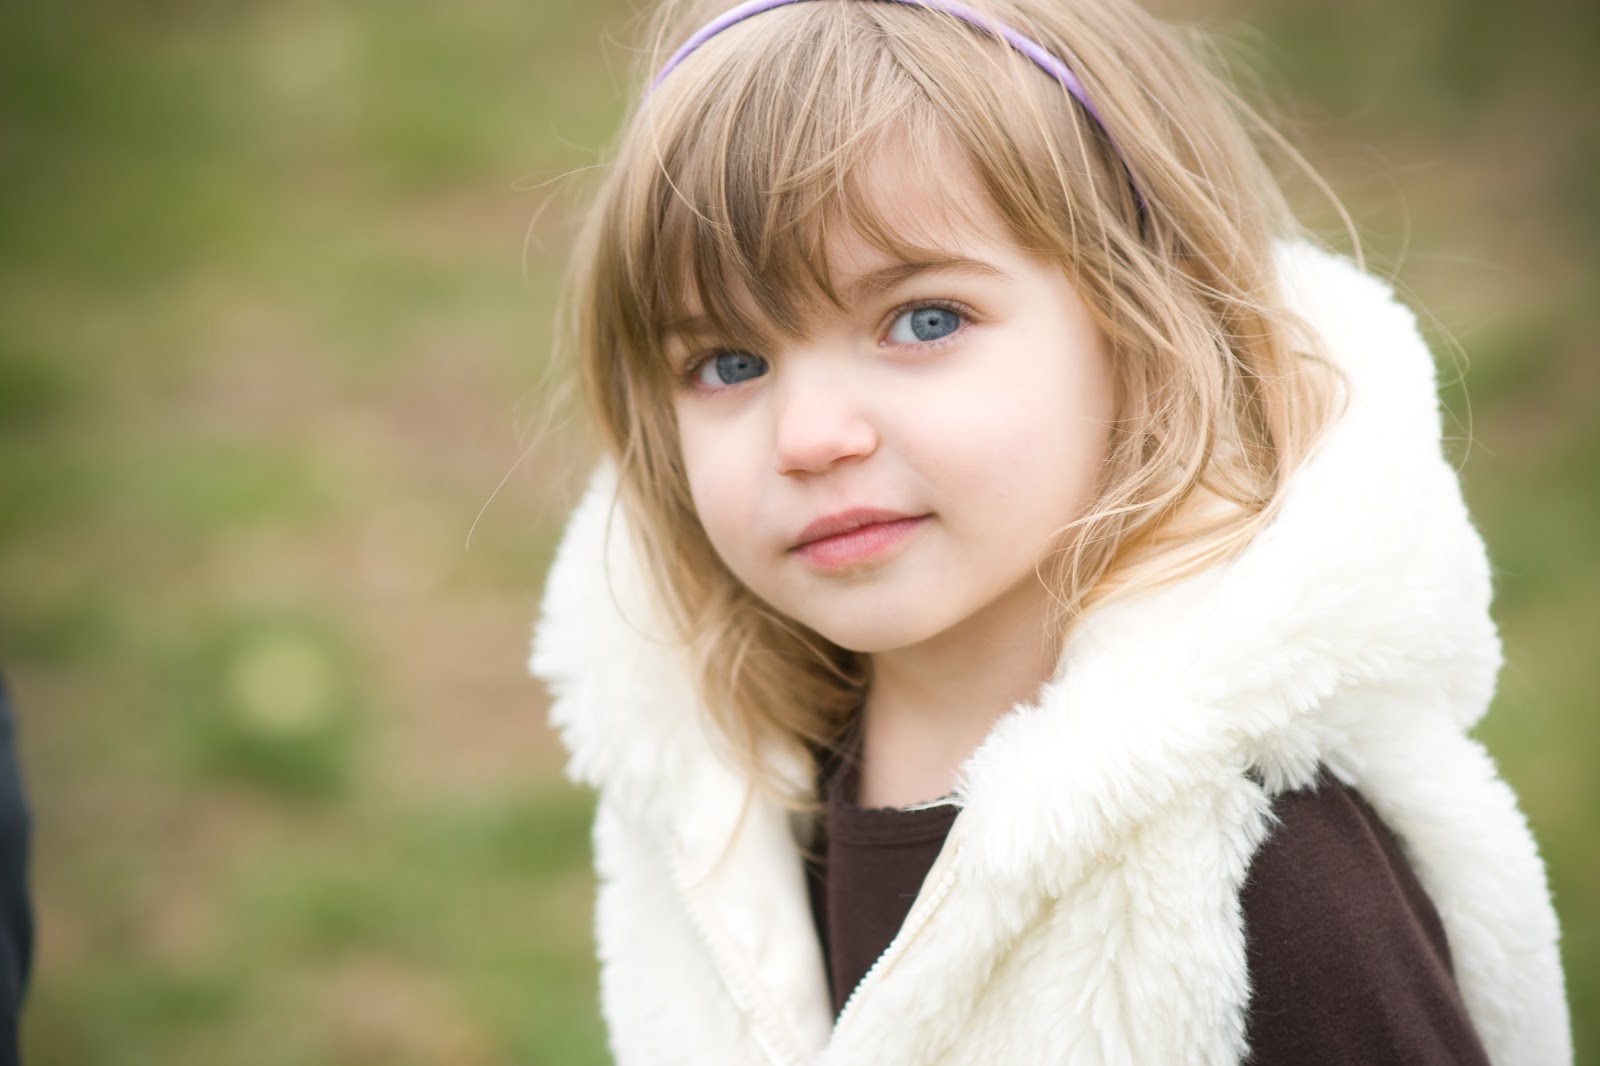 Beautiful Smile Young Girl HD Wallpapers   Beautiful Smile Young Girl Wallpaper